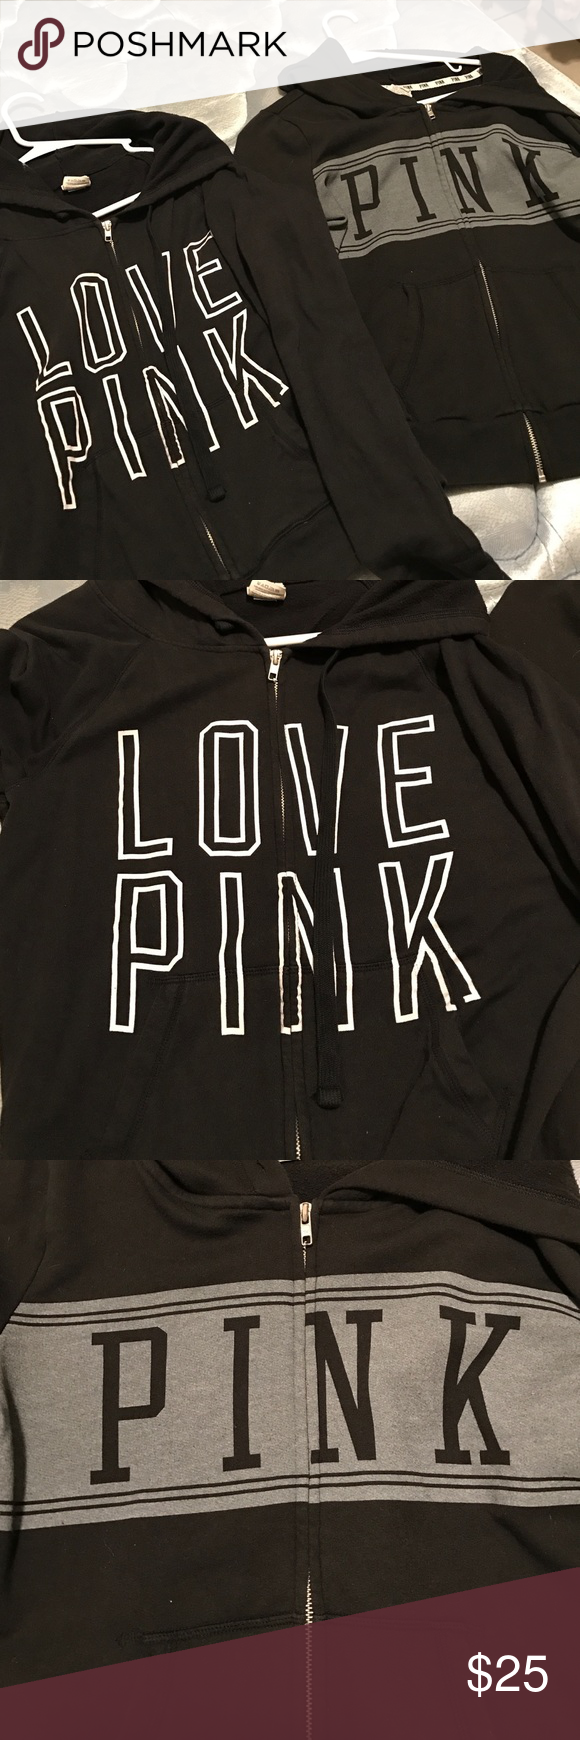 PINK Zip-ups. Both worn a few times. 2 black PINK hoodies with white and grey logos. $25 for both! PINK Victoria's Secret Other